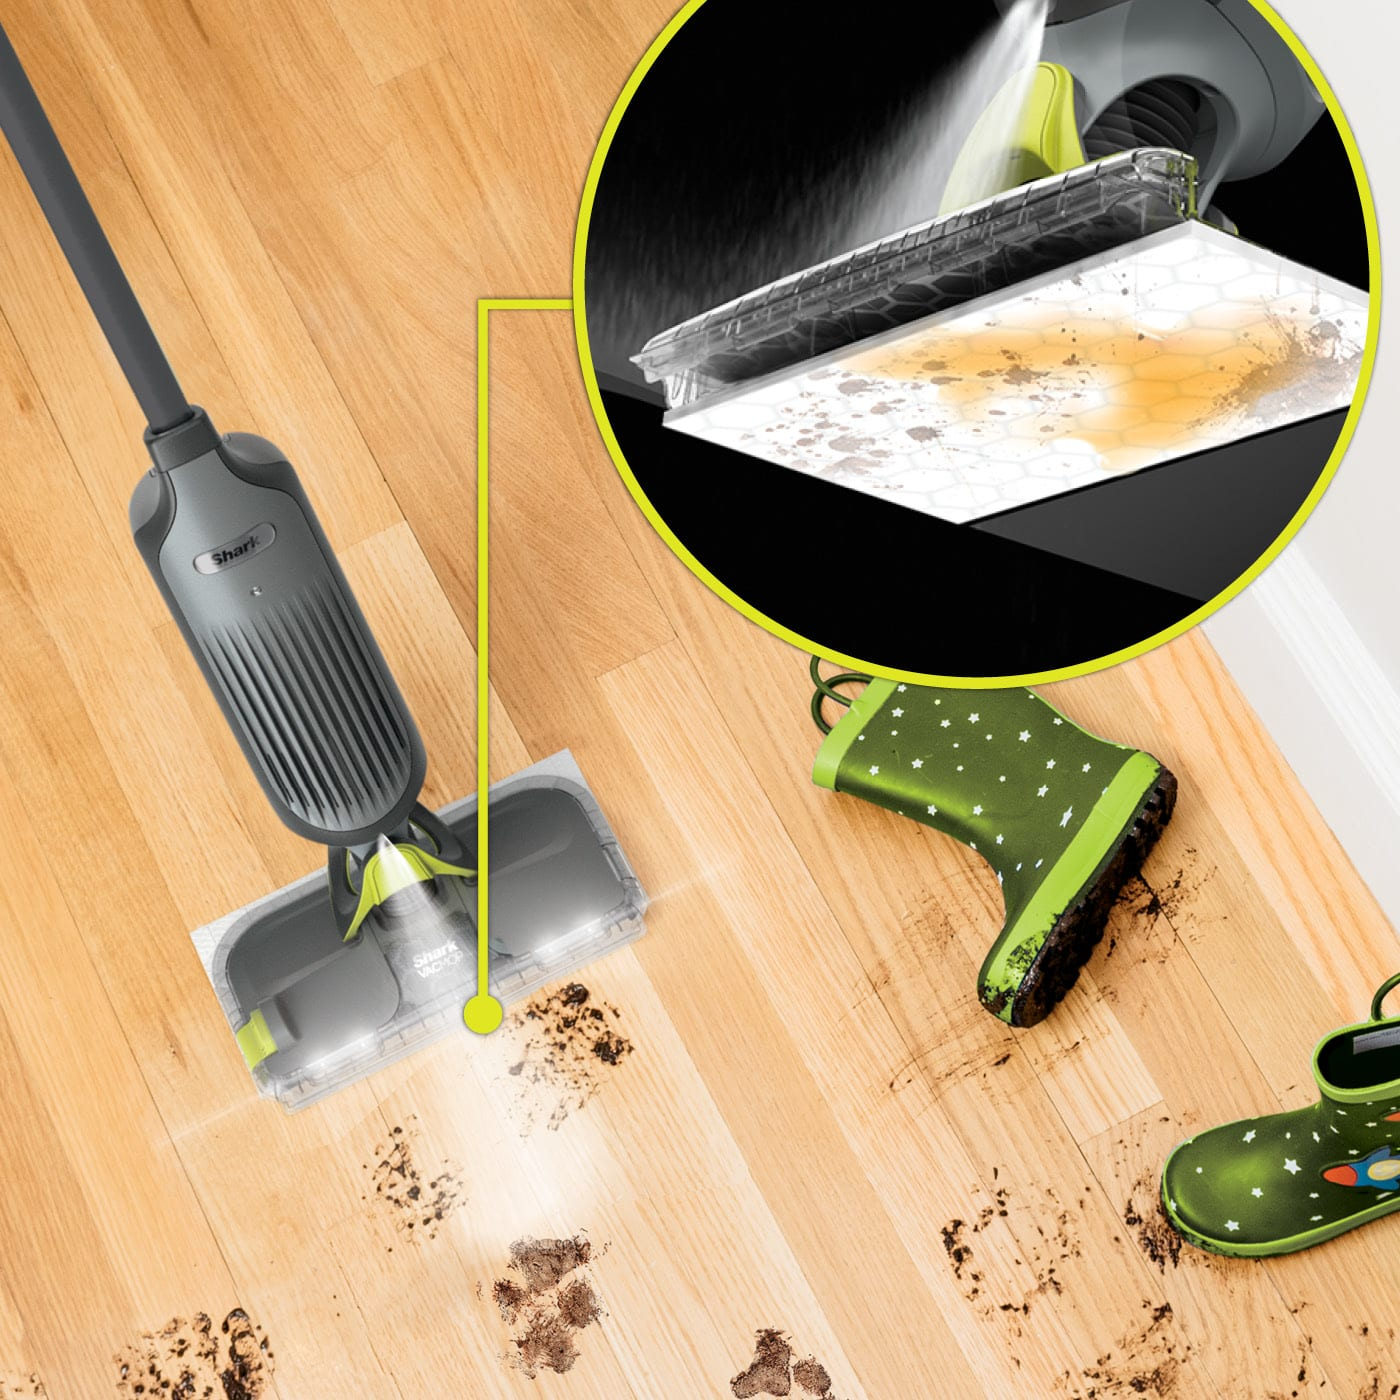 Spray mops for finished floors